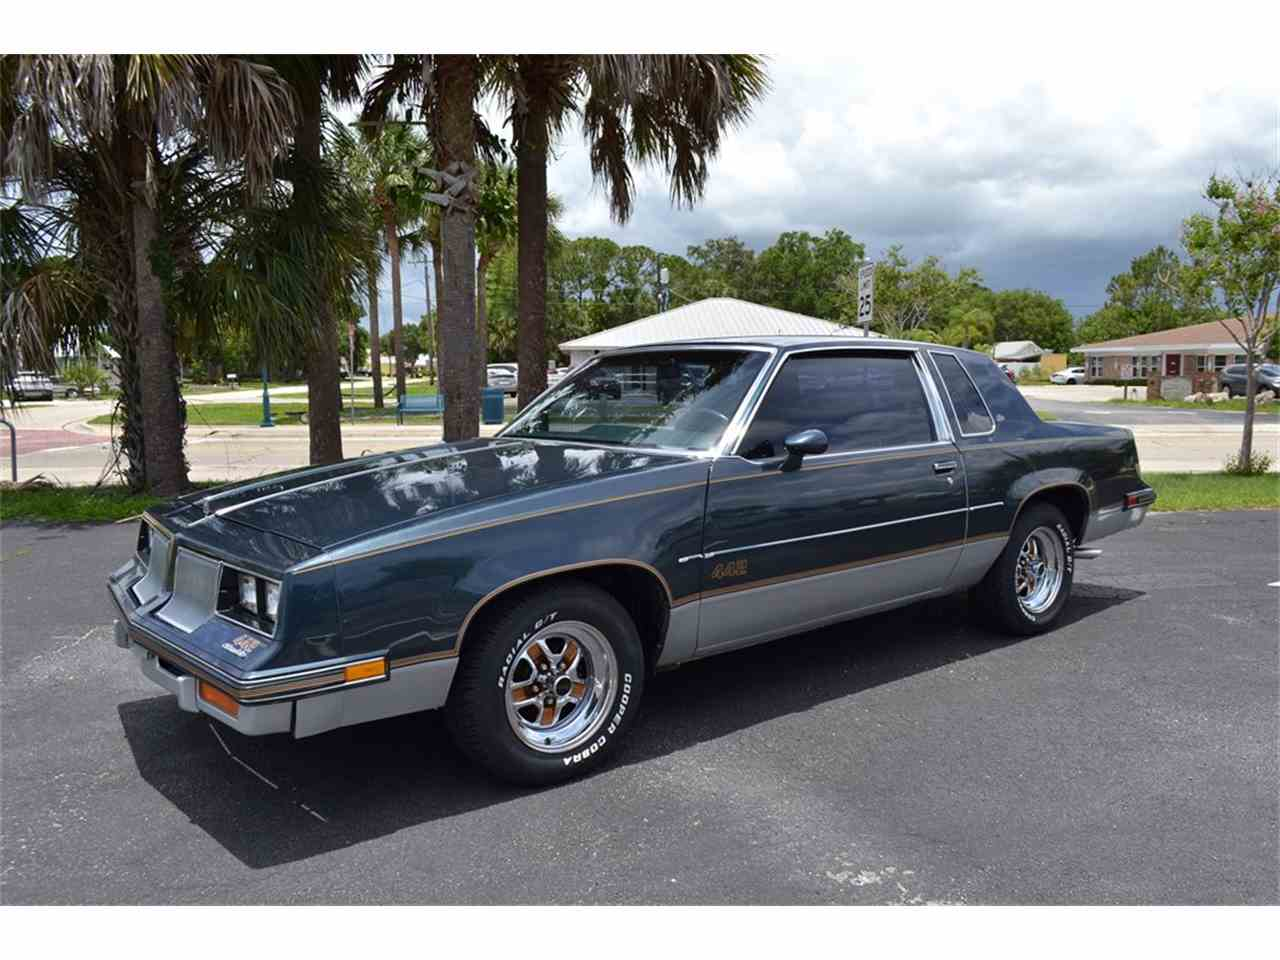 1986 oldsmobile cutlass for sale cc 996230 for 1986 oldsmobile cutlass salon for sale